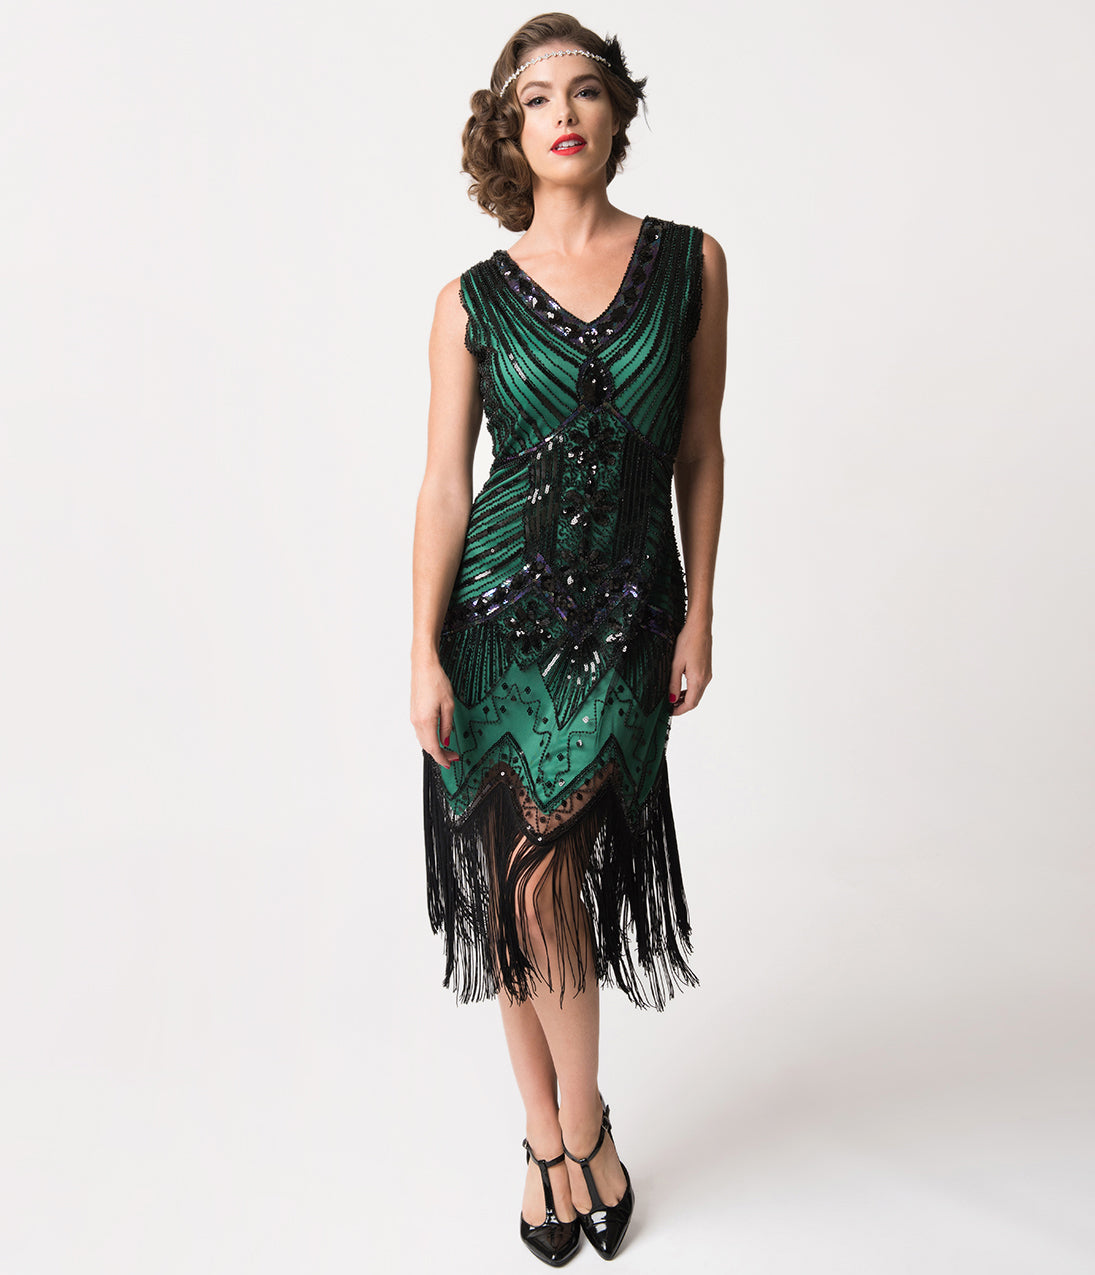 50 Vintage Halloween Costume Ideas Unique Vintage 1920S Deco Green  Black Sequin Veronique Fringe Flapper Dress $98.00 AT vintagedancer.com